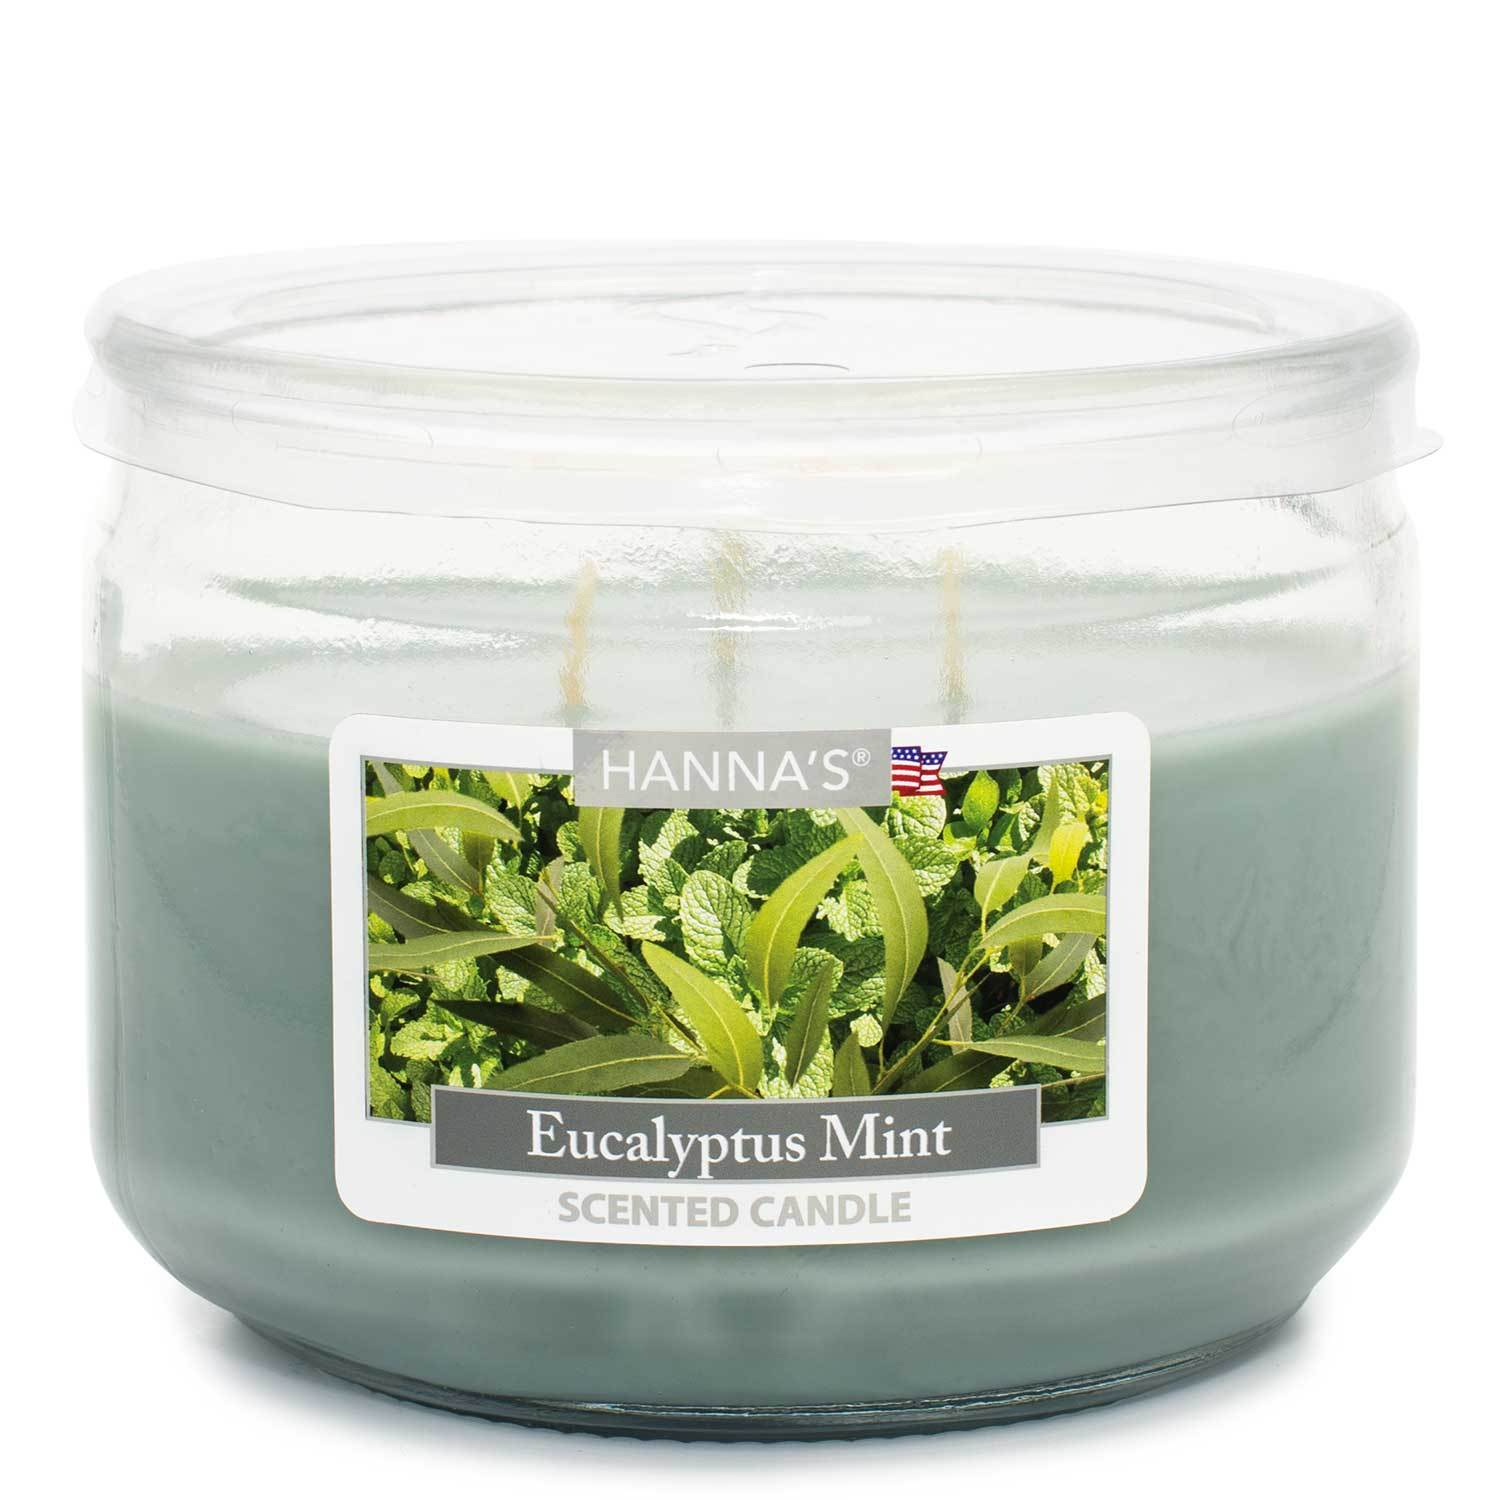 Eucalyptus Mint Scented 3 wick Candle Candles Candlemart.com $ 7.99